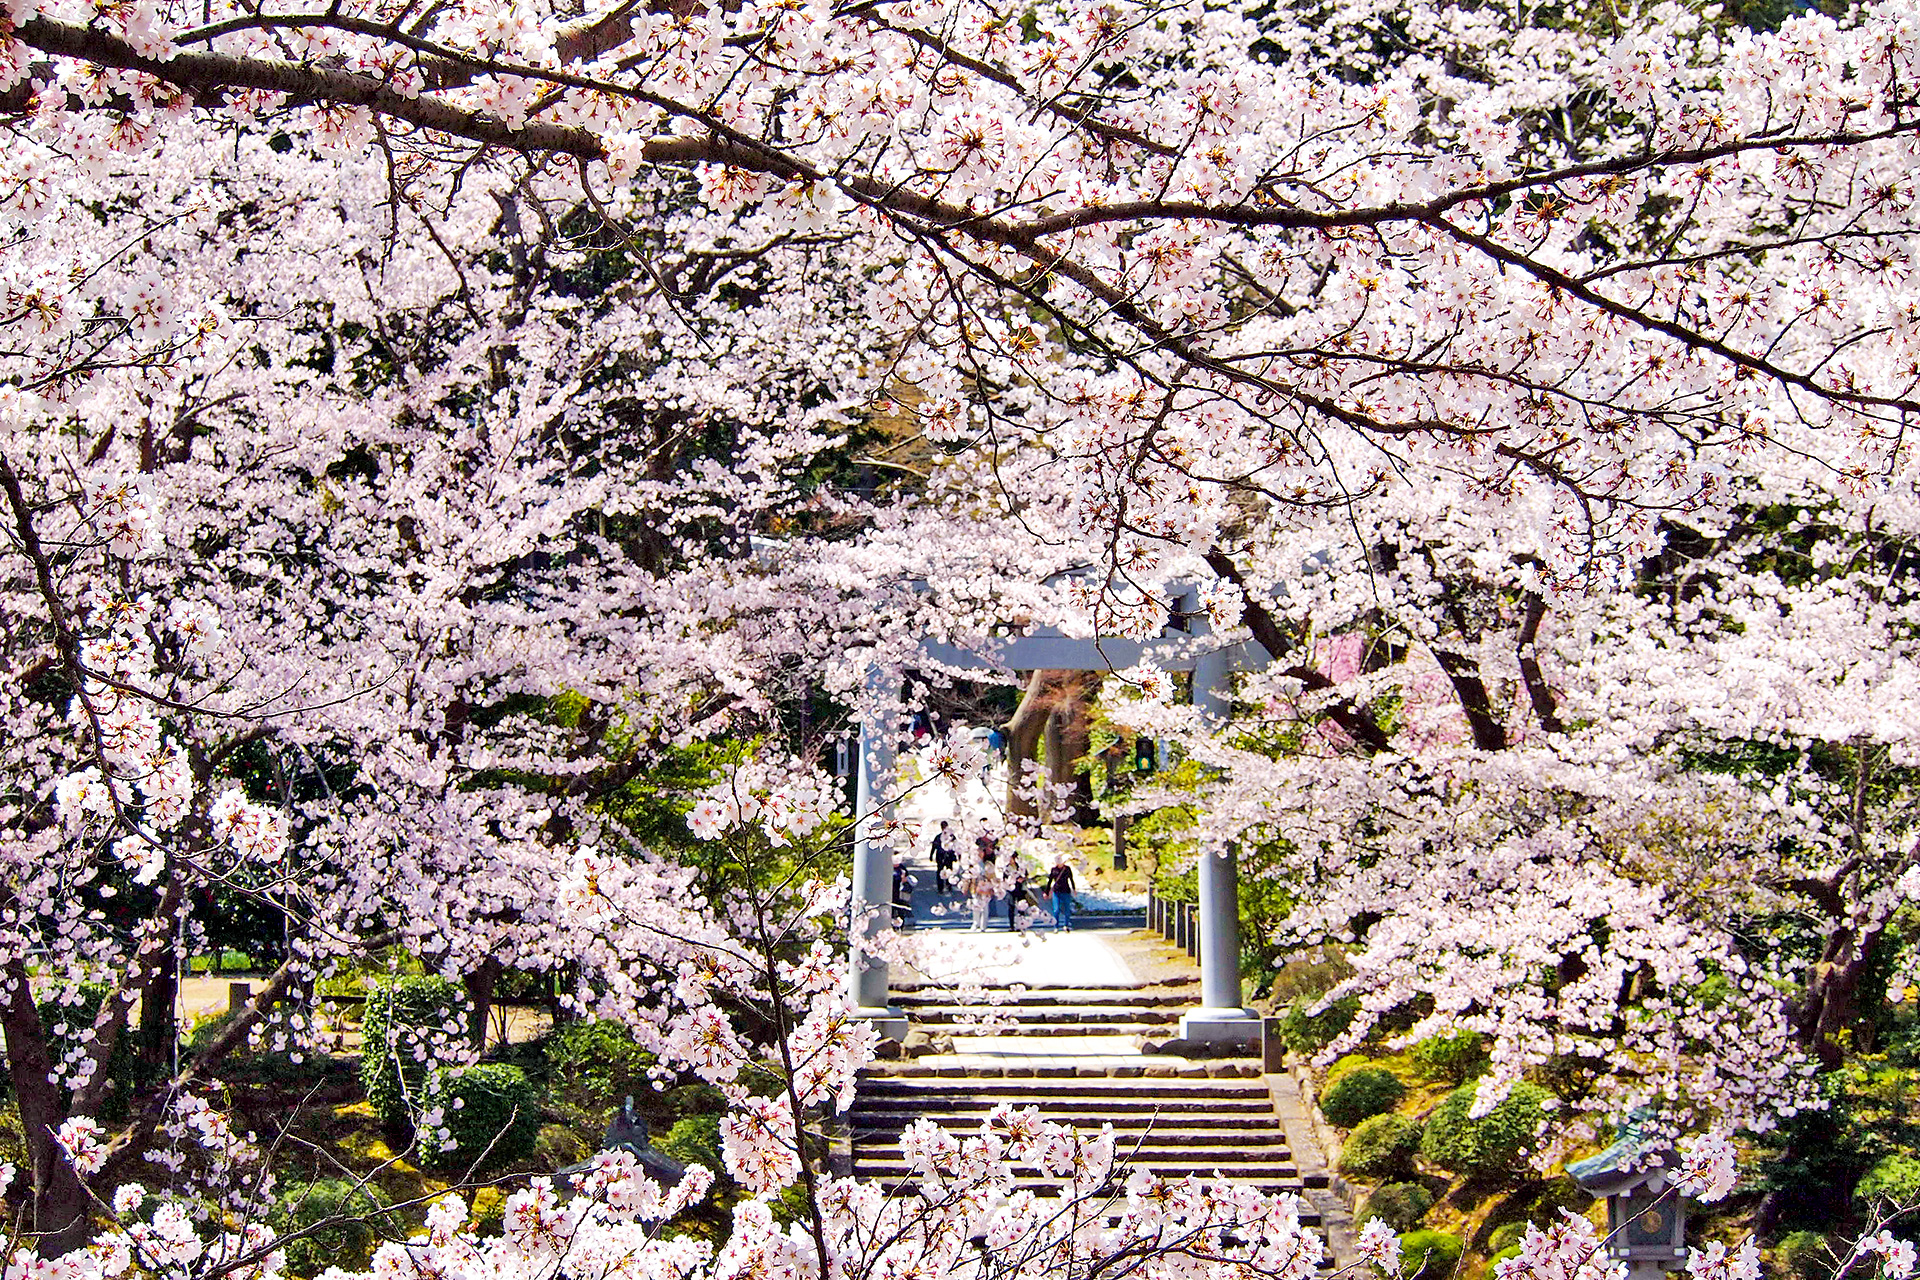 View the cherry blossoms in full bloom at Yahiko Shrine